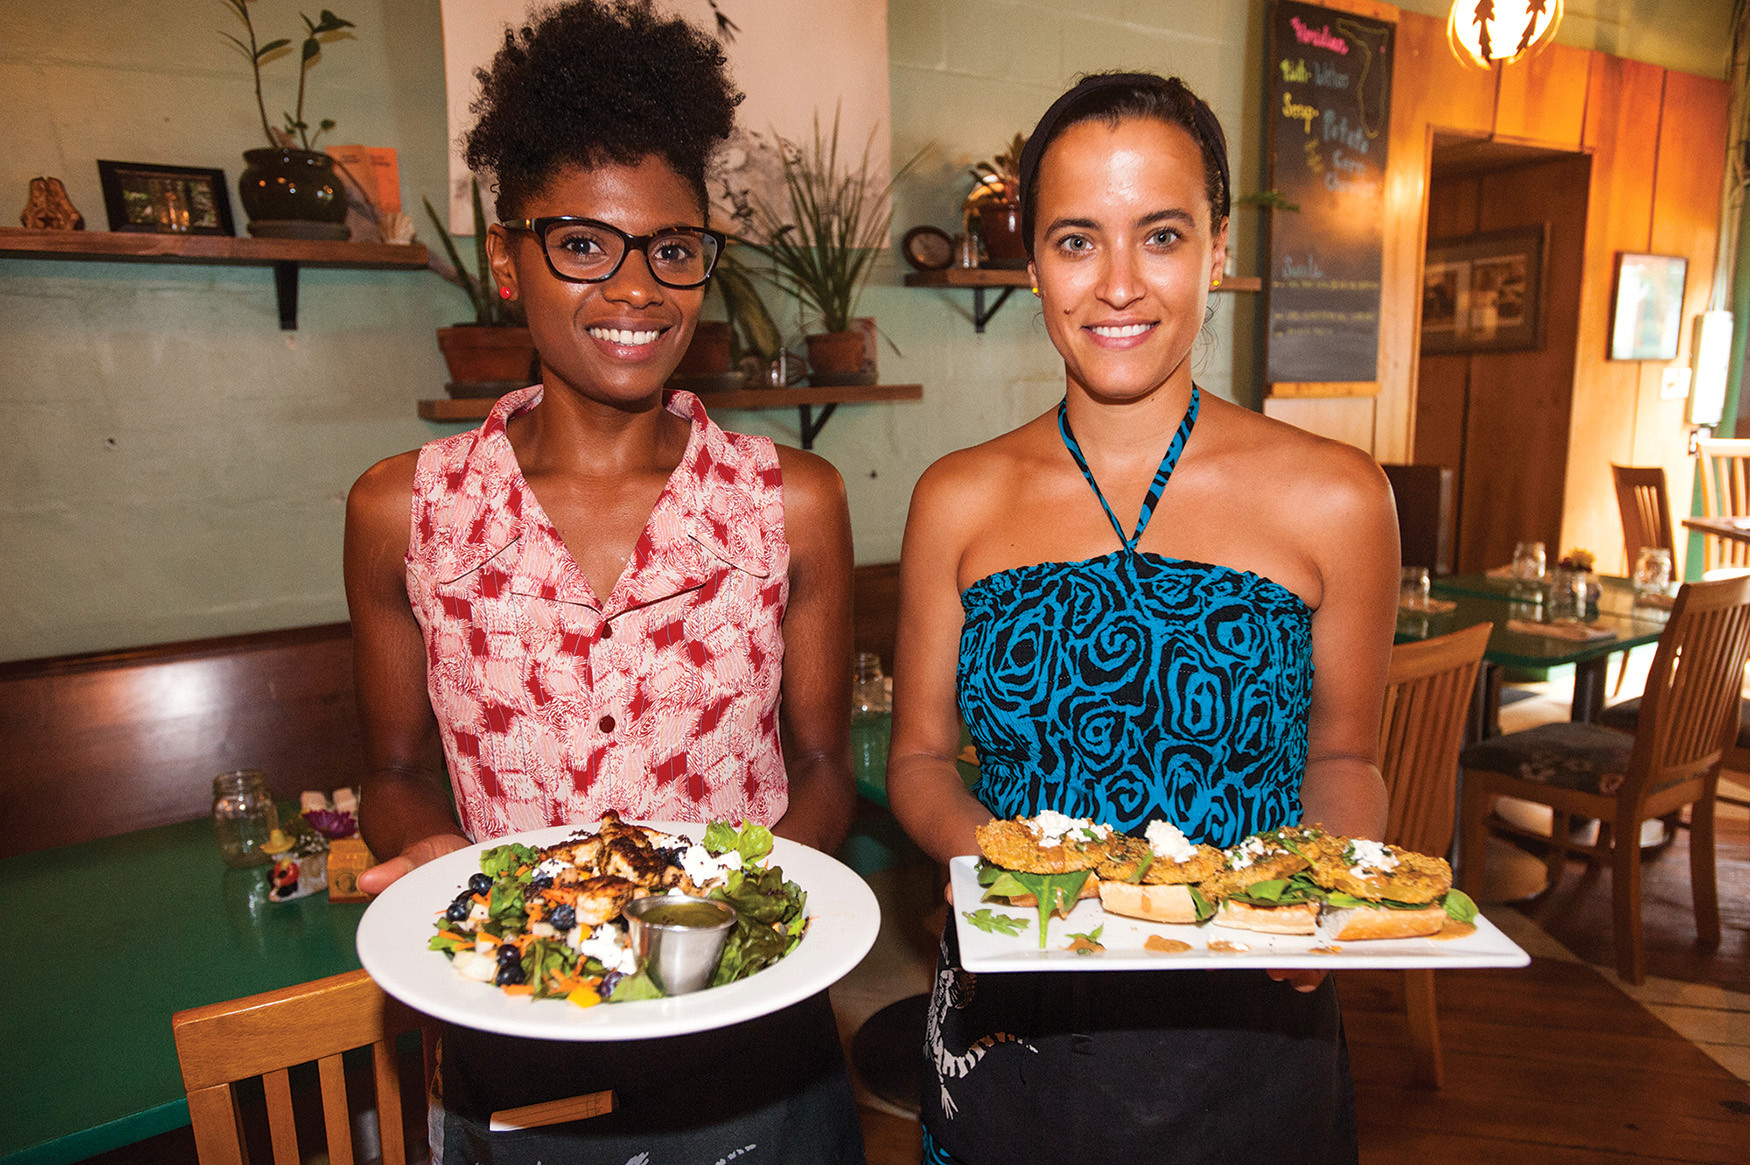 Nicole Jones and Lauren Woinski of The Floridian in St. Augustine present a summer salad made with blackened shrimp, blueberries, cucumbers, quinoa, local cheese and a honey herb vinaigrette (left) and a plate of cornmeal-dusted fried green tomato bruschetta with a cumin aioli sauce topped with feta.